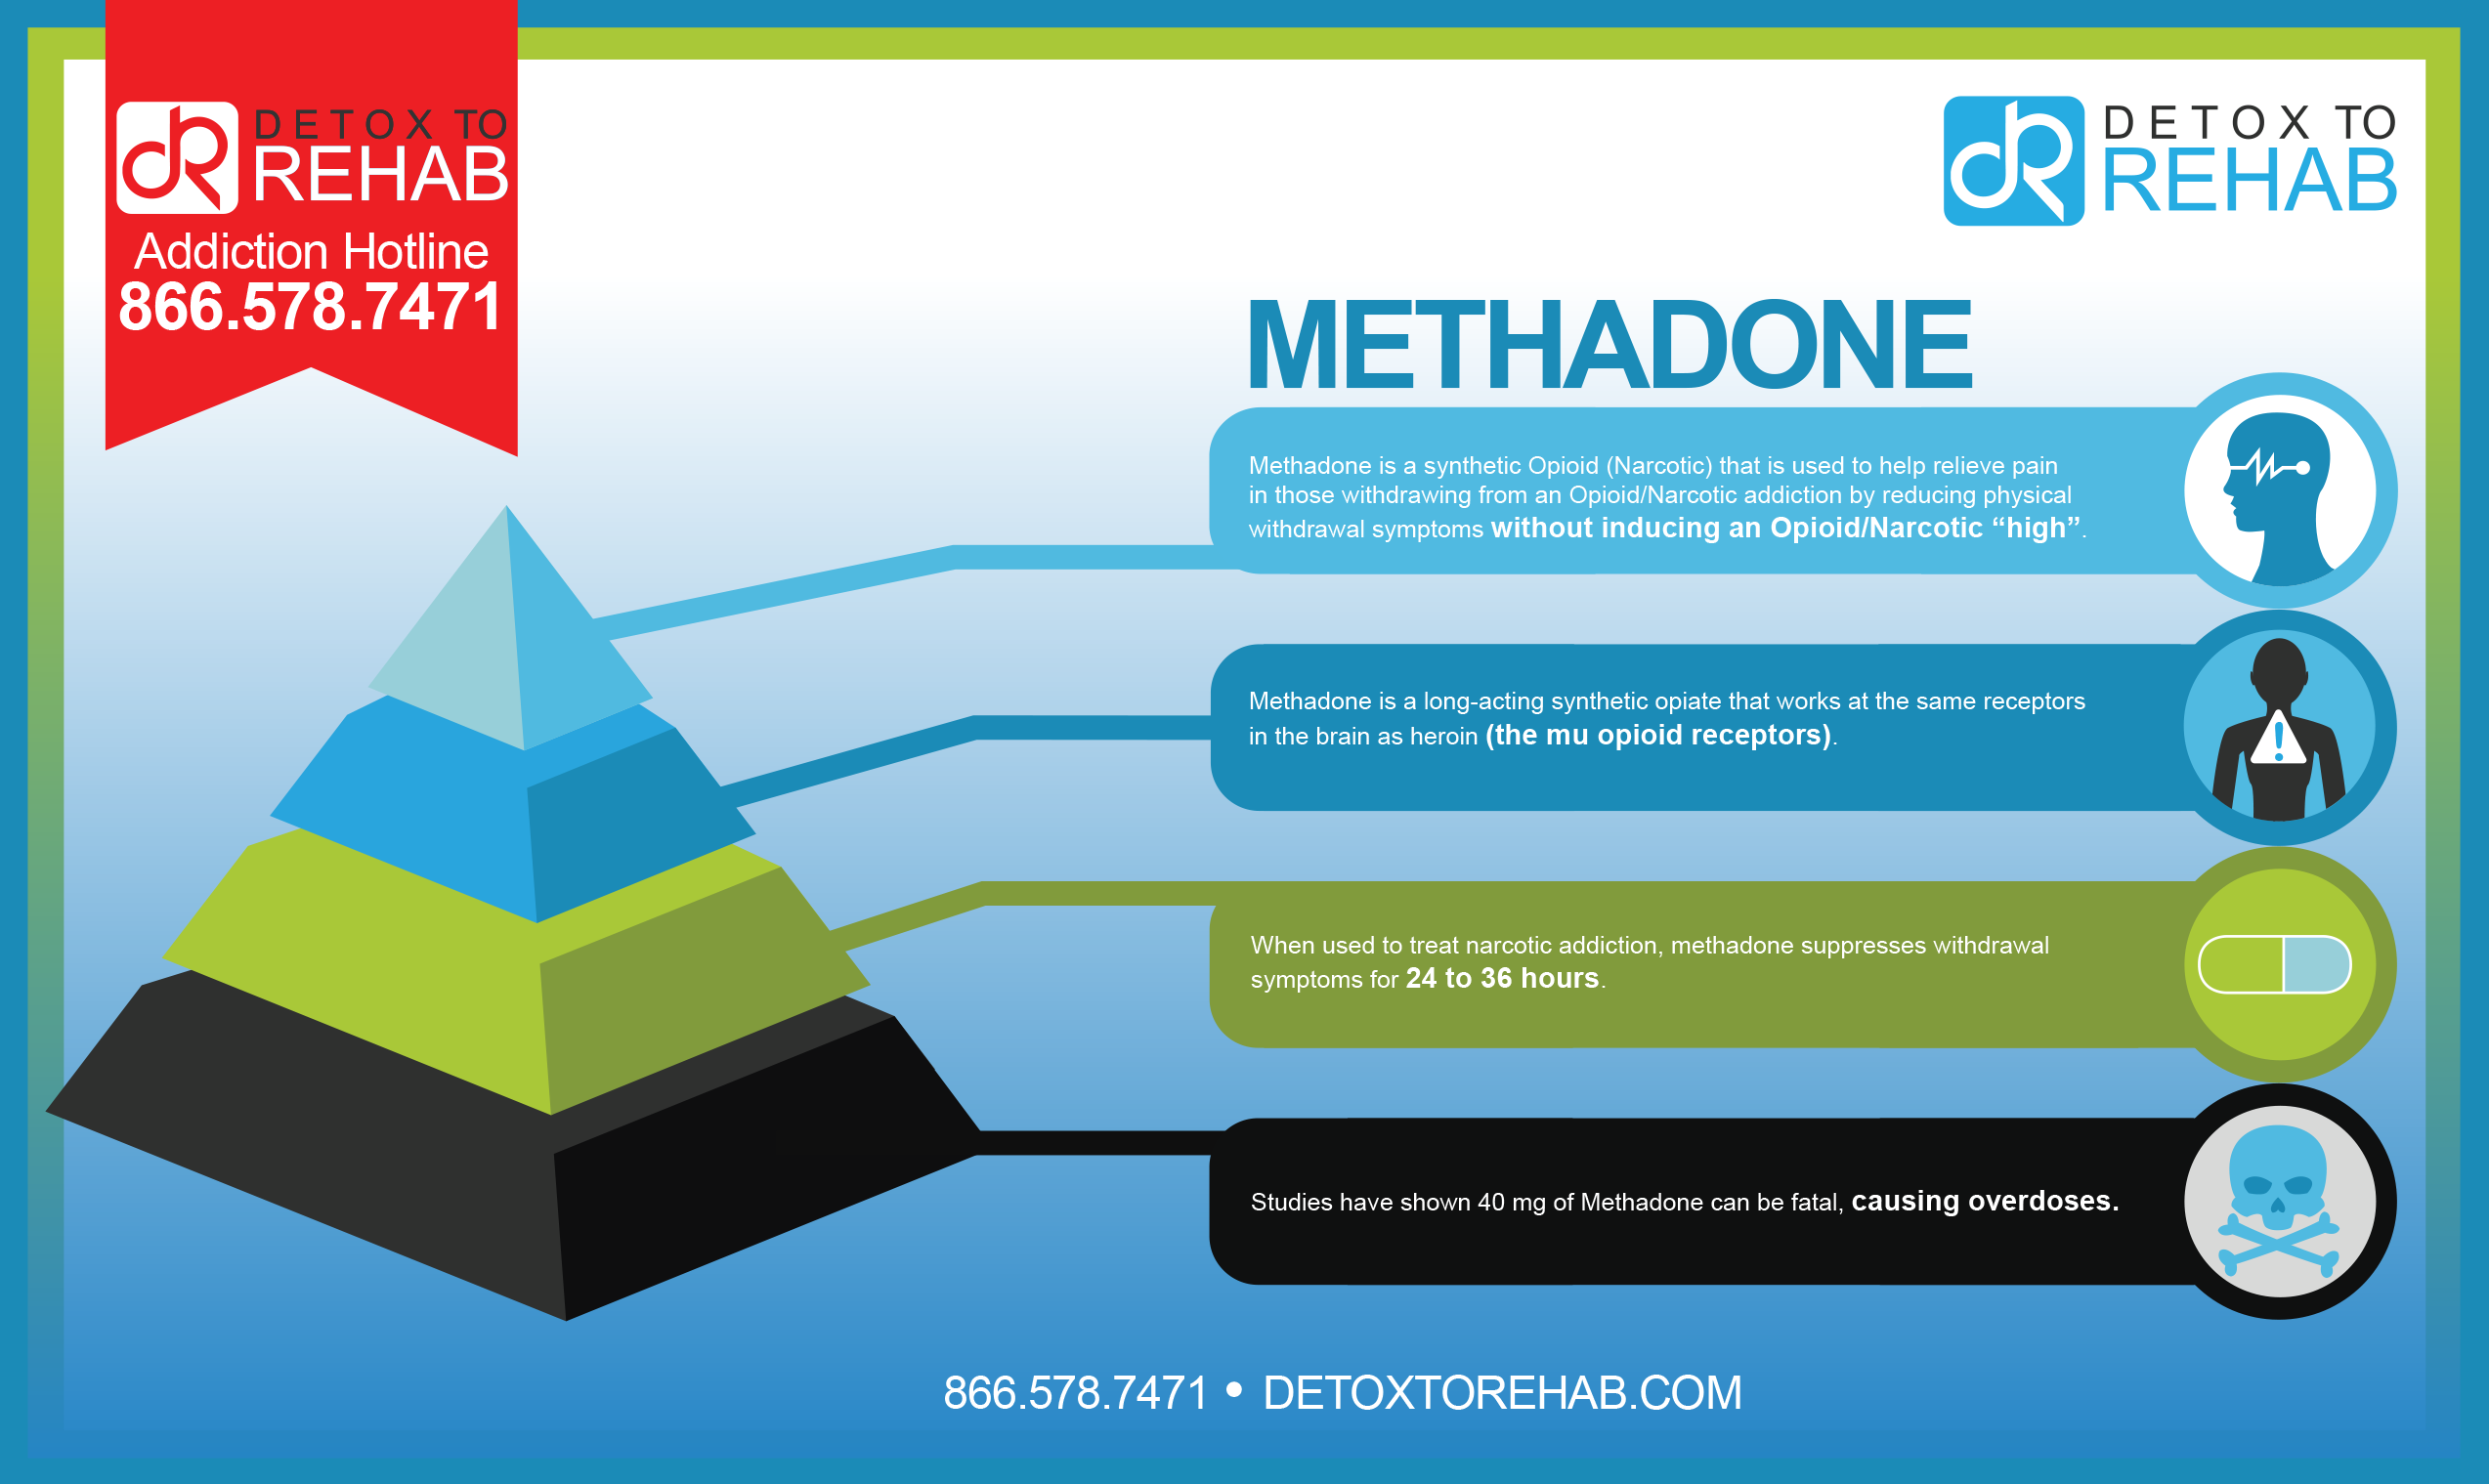 Rehab Addict Methadone Addiction And Rehabilitation Detox To Rehab